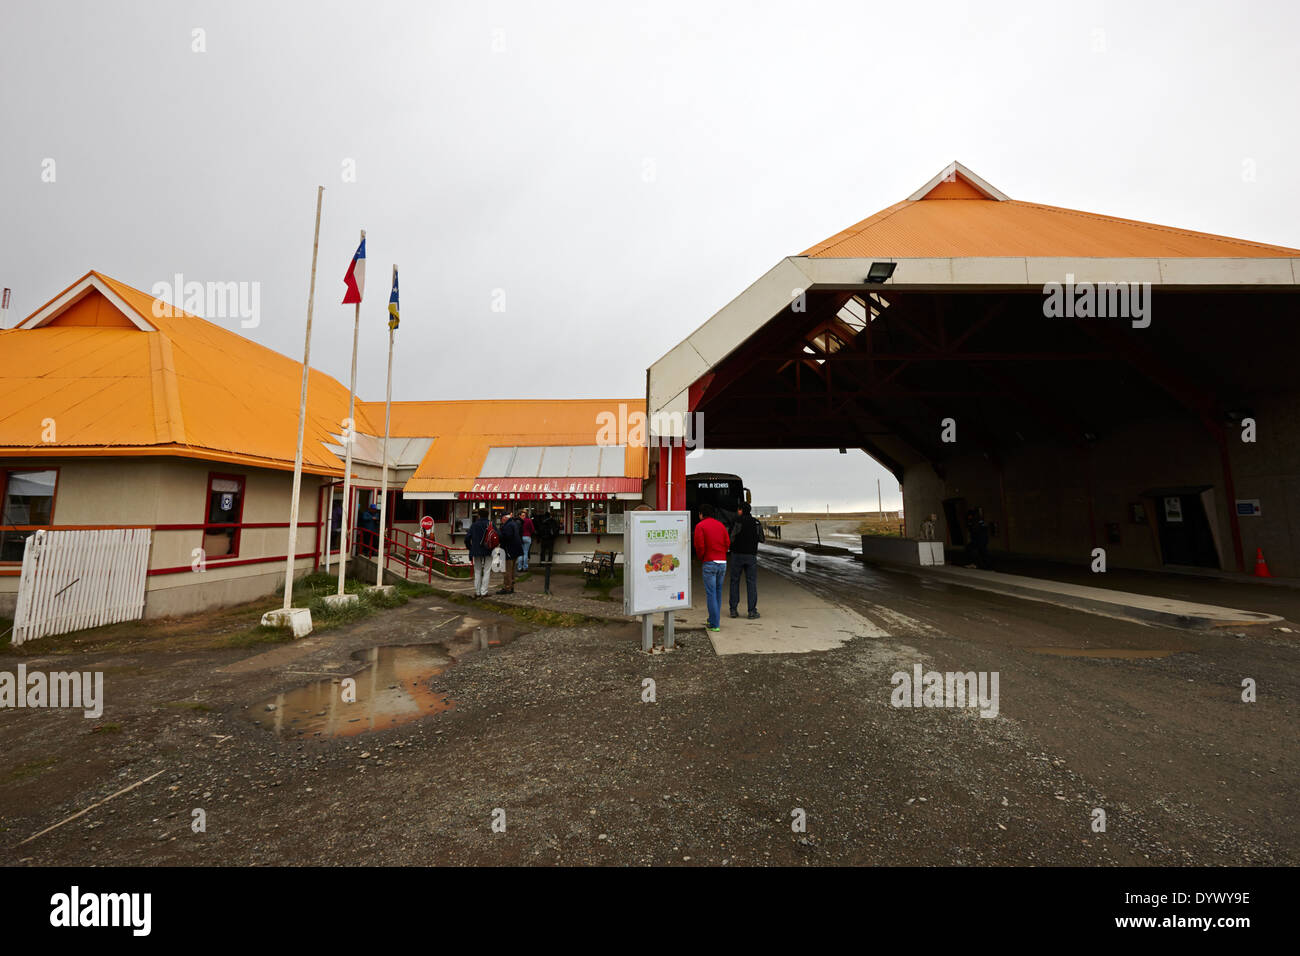 chilean border and customs post with small shop Tierra Del Fuego island Chile - Stock Image